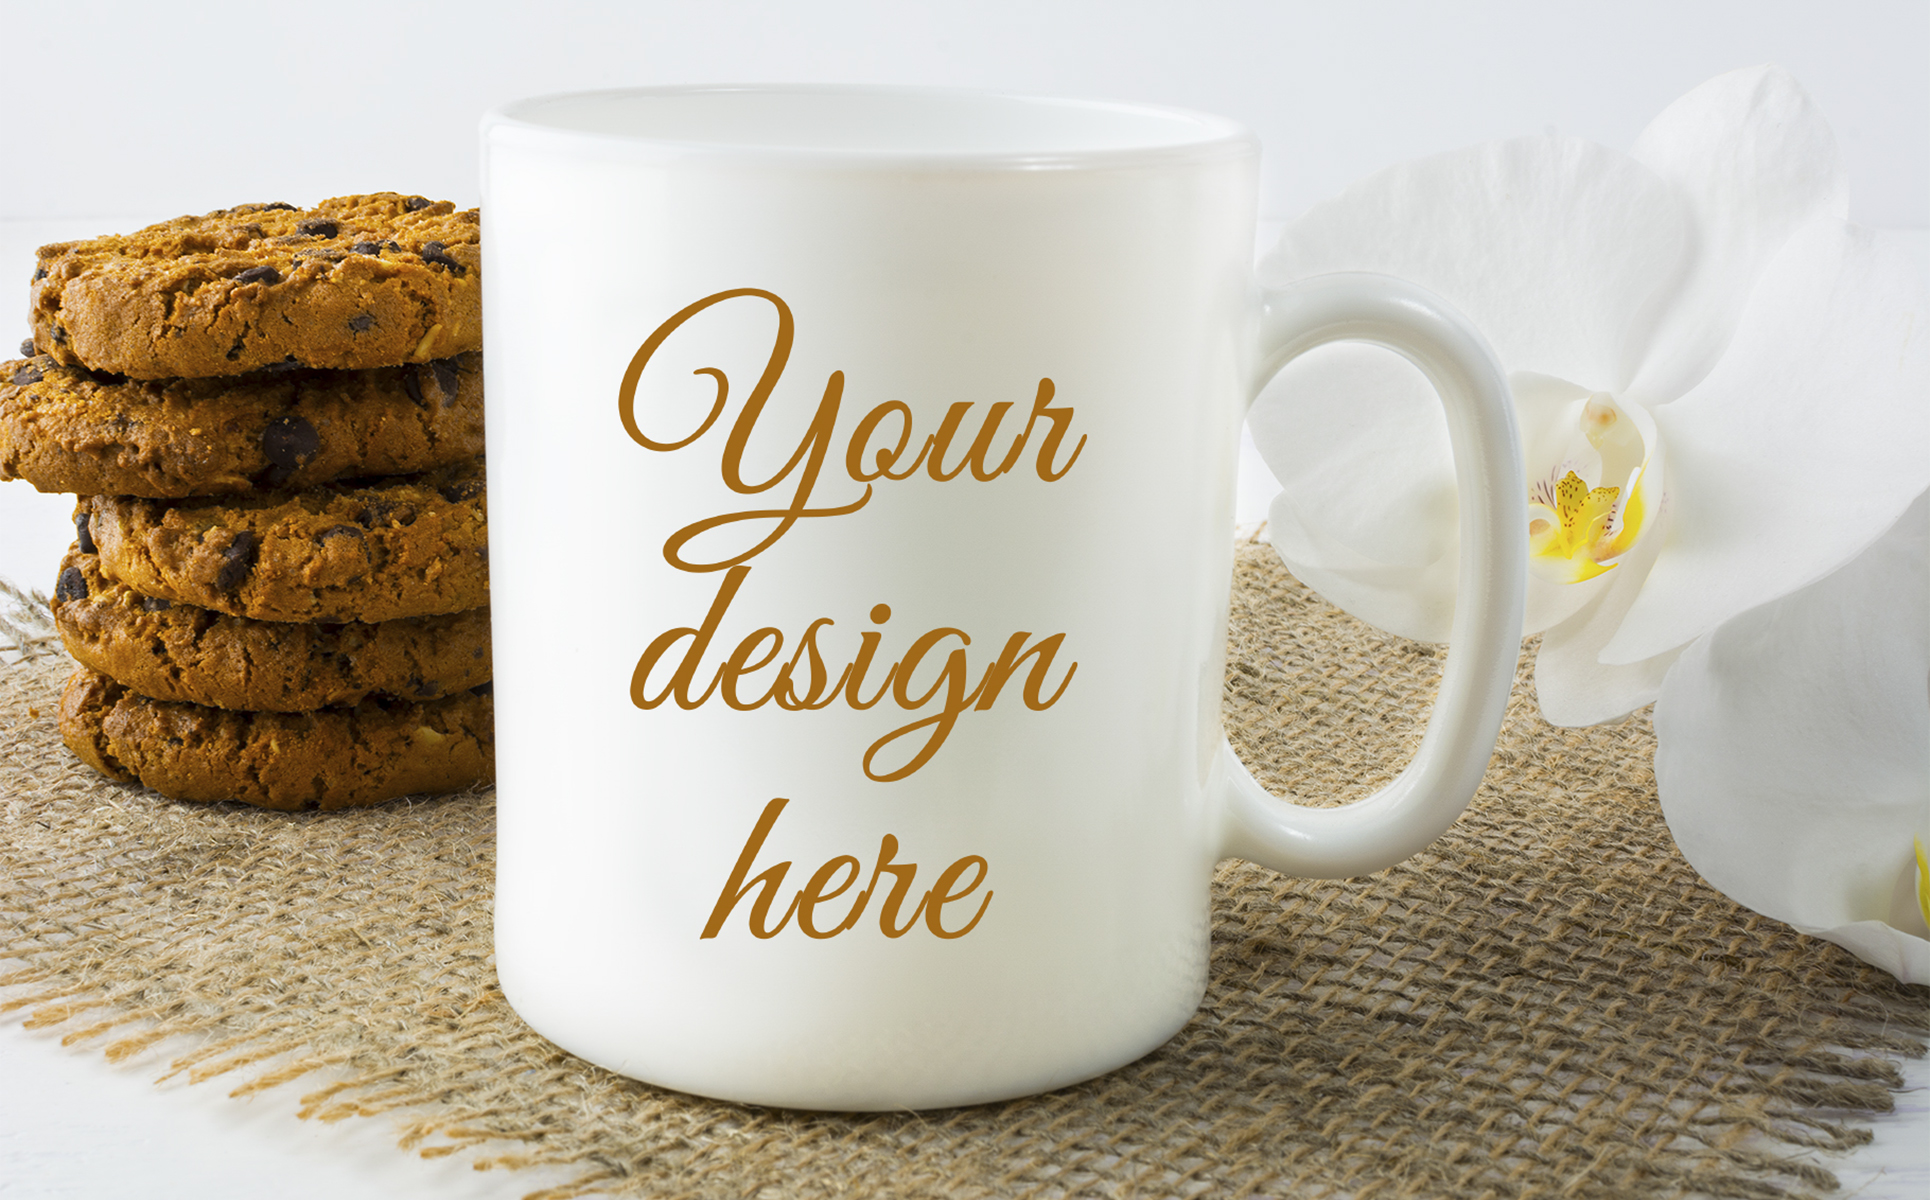 https://s3u.tmimgcdn.com/2134468-1569755306702_Coffee%20mug%20mockup%20with%20cookies_p_tmp2.jpg